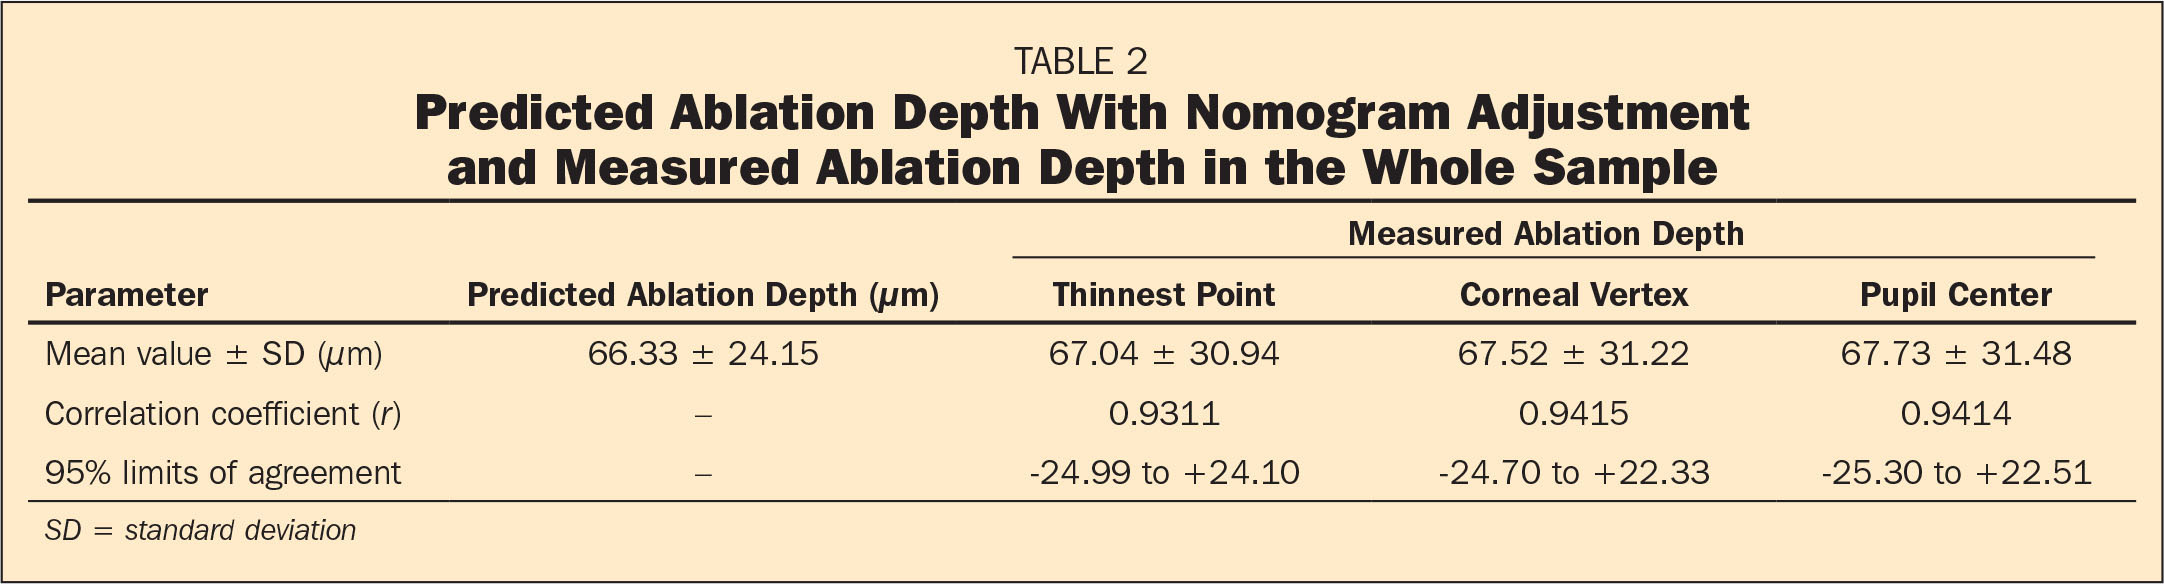 Predicted Ablation Depth With Nomogram Adjustment and Measured Ablation Depth in the Whole Sample